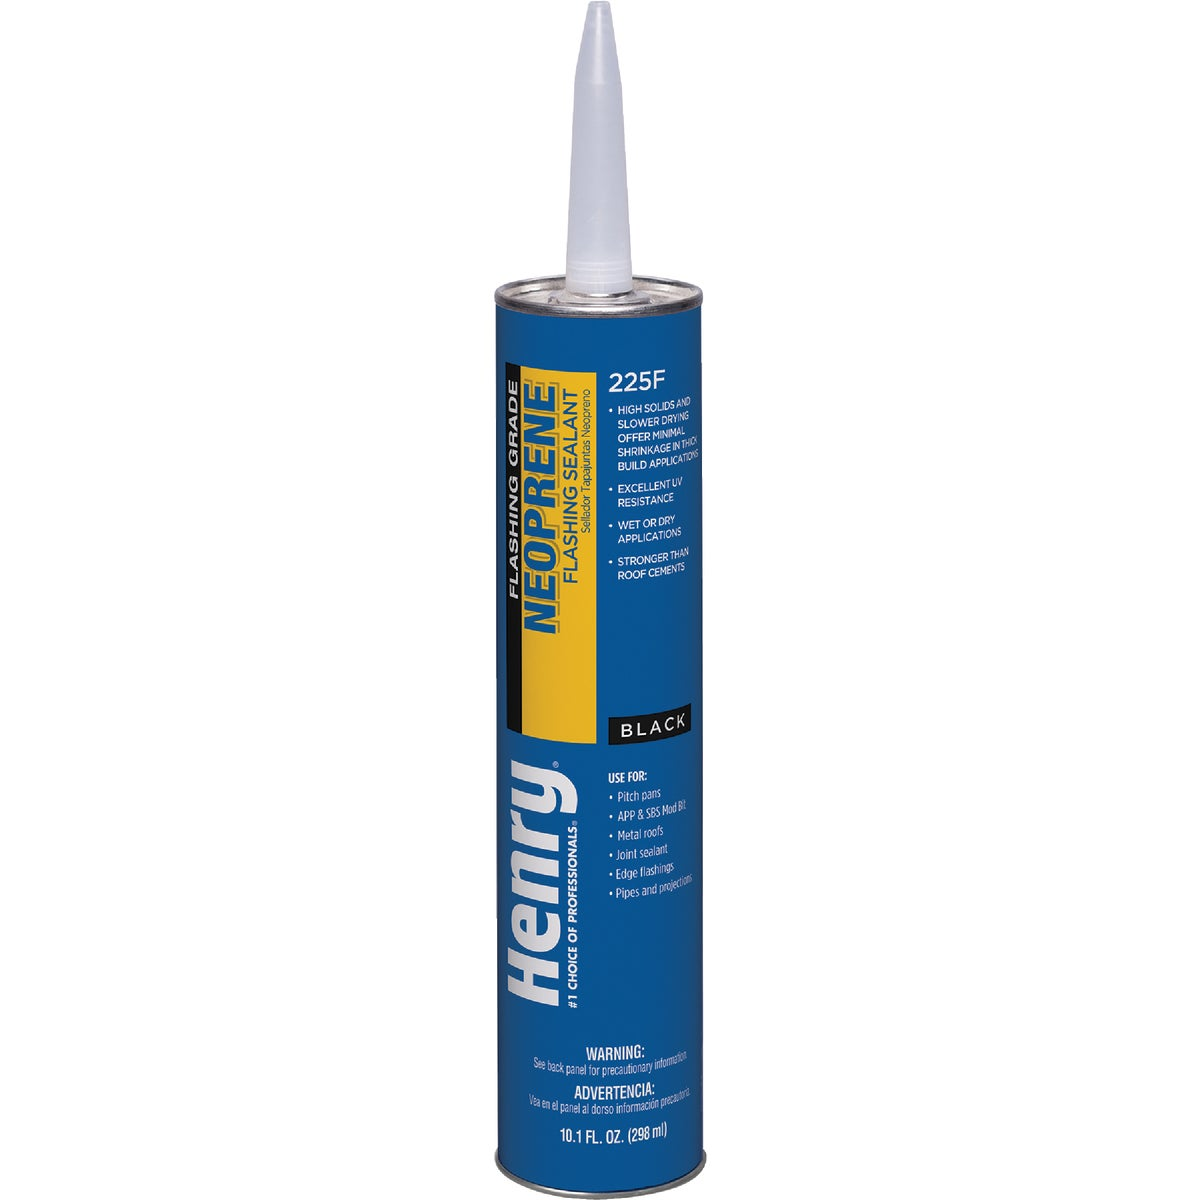 11OZ NPRN FLASH SEALANT - HE225F104 by Henry Company